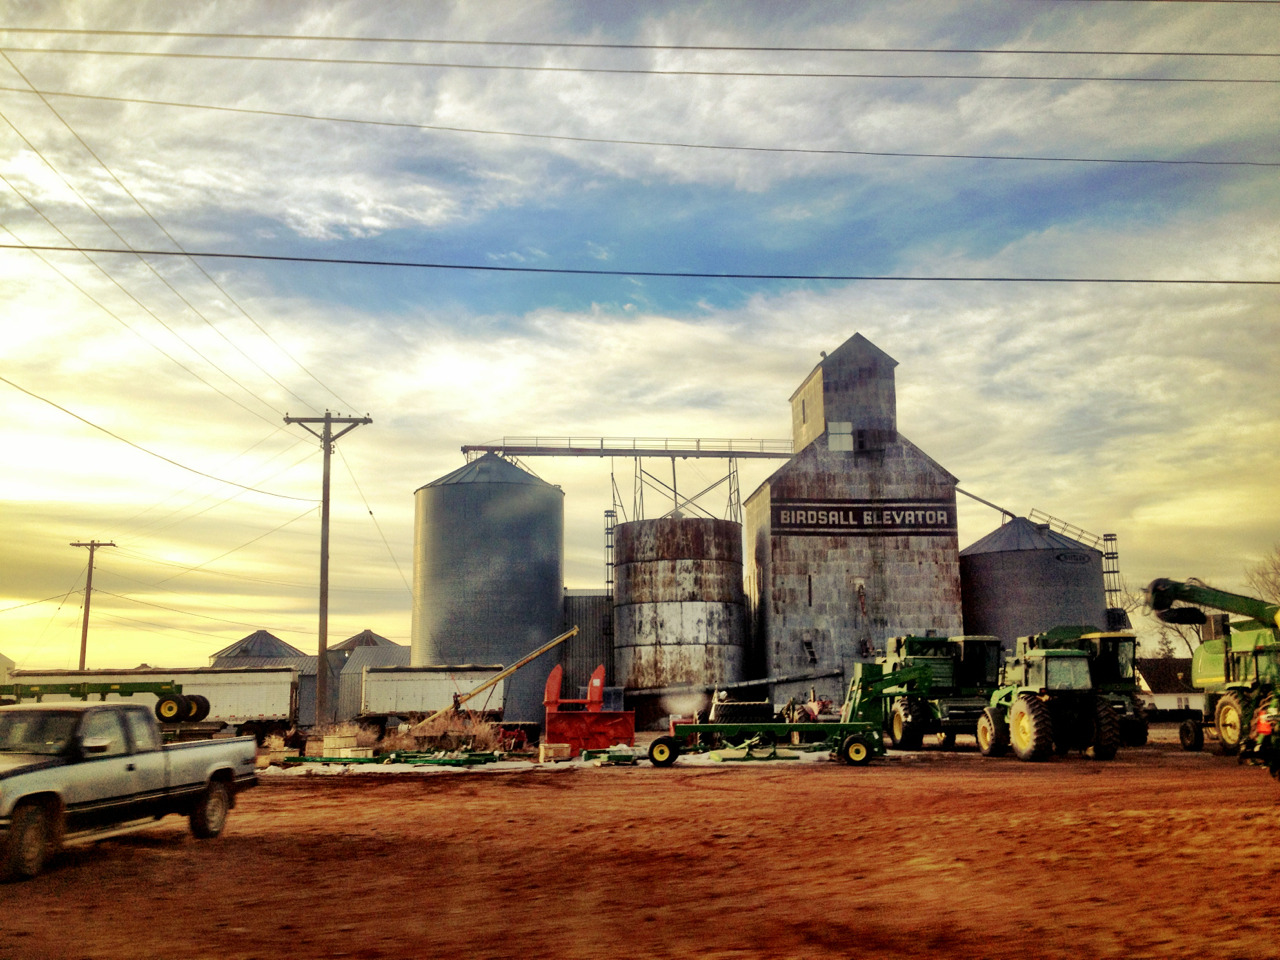 The grain mill at the end of the street in Elgin, North Dakota.